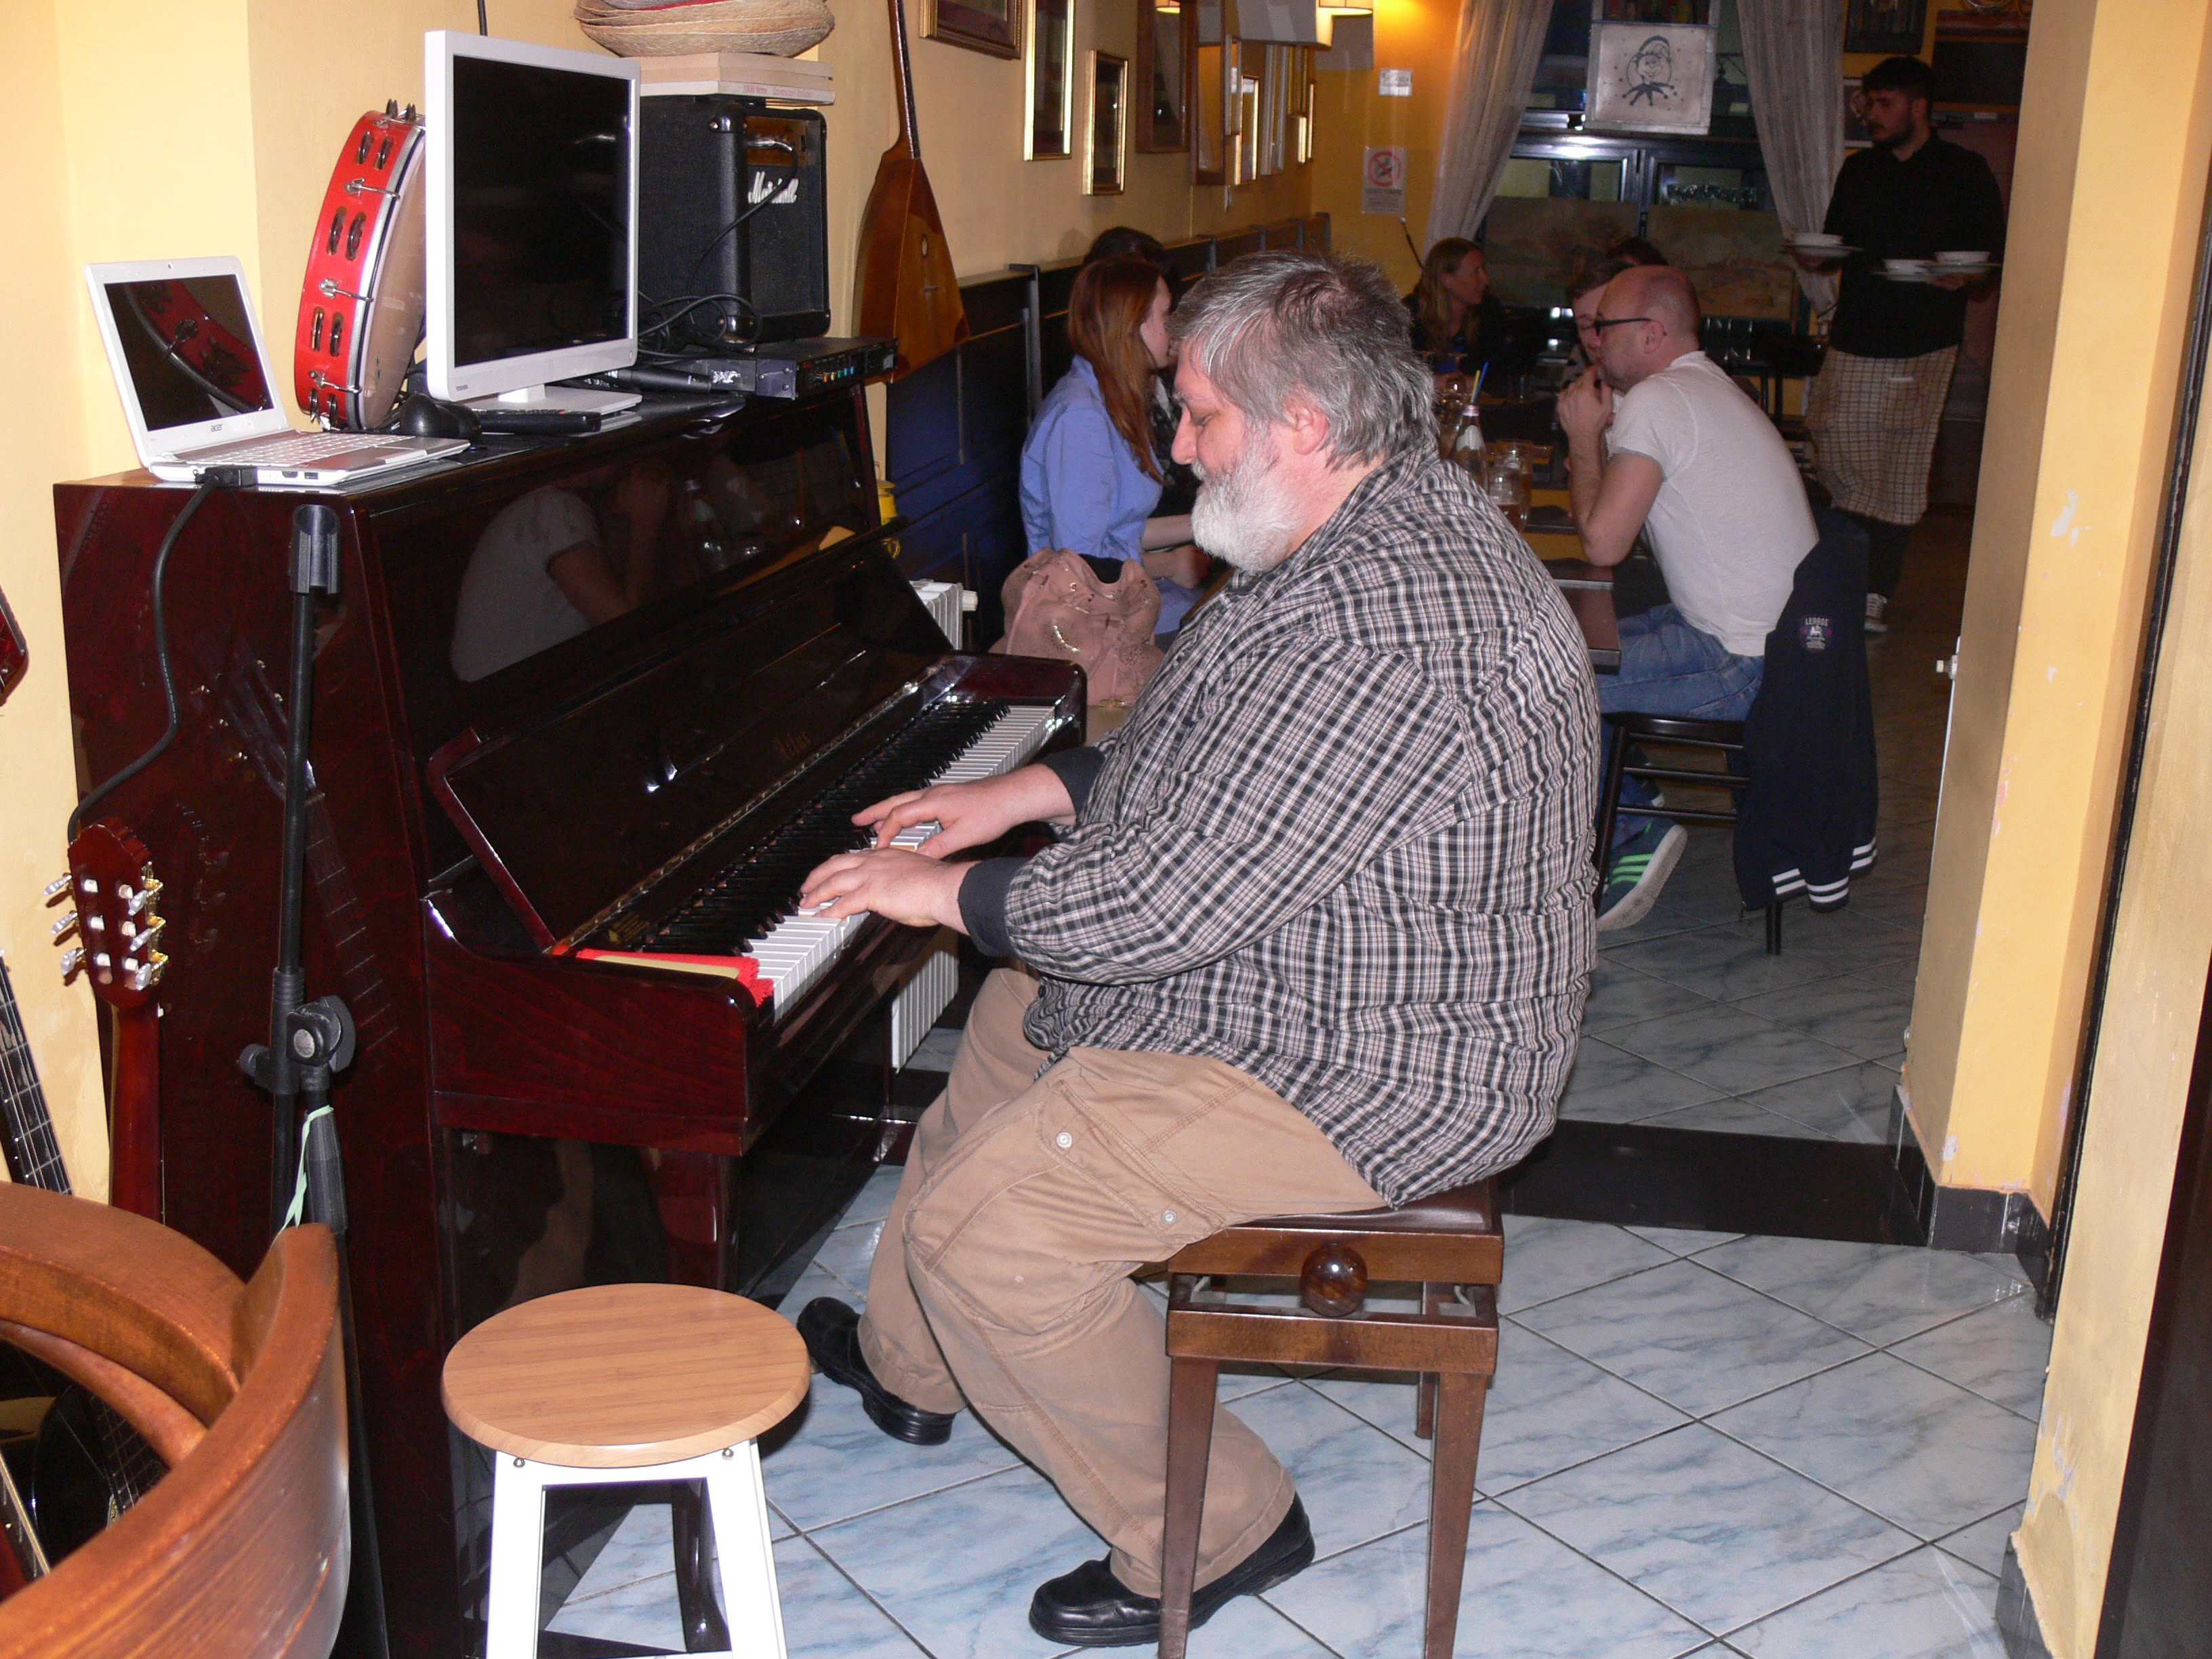 Papa Guisseppe playing the piano at the cafe where we ate